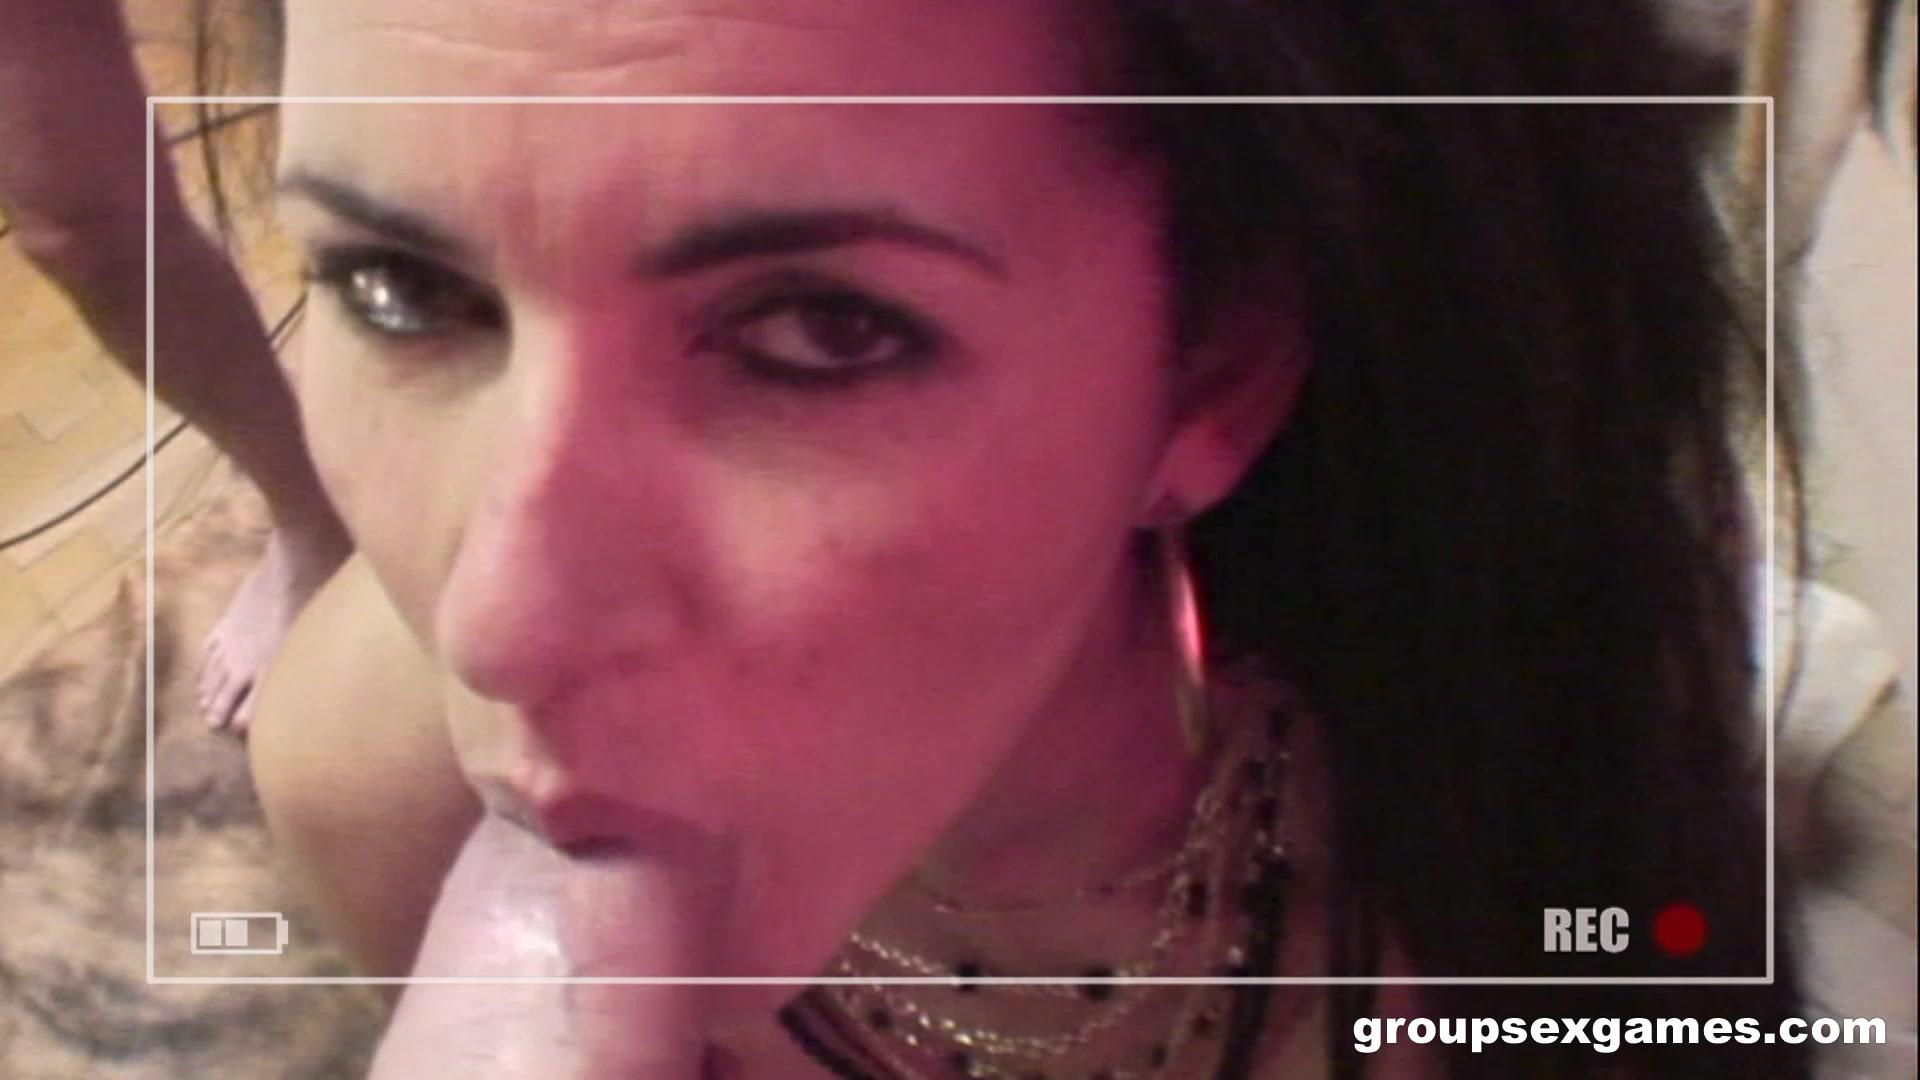 Group Sex Games – Georgina Smith Takes It In The Ass